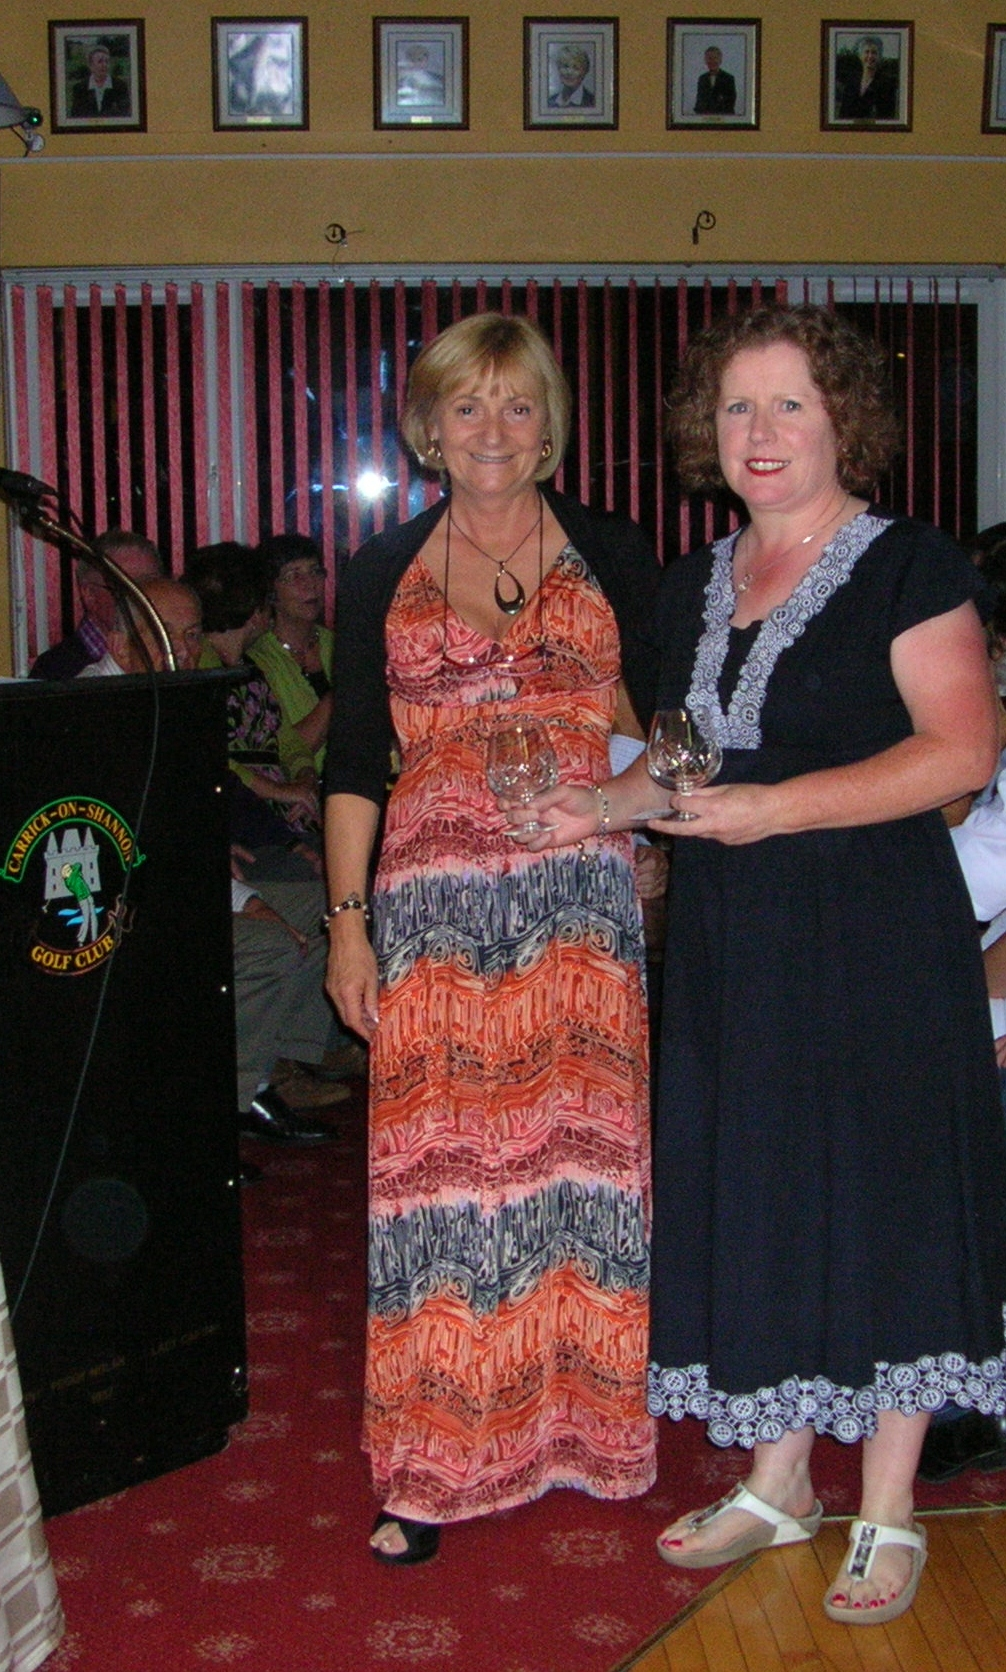 Lady Captain Mary King presents Cat 1-19 Prize on Lady Captains Prize Day 2012 to Siobhan